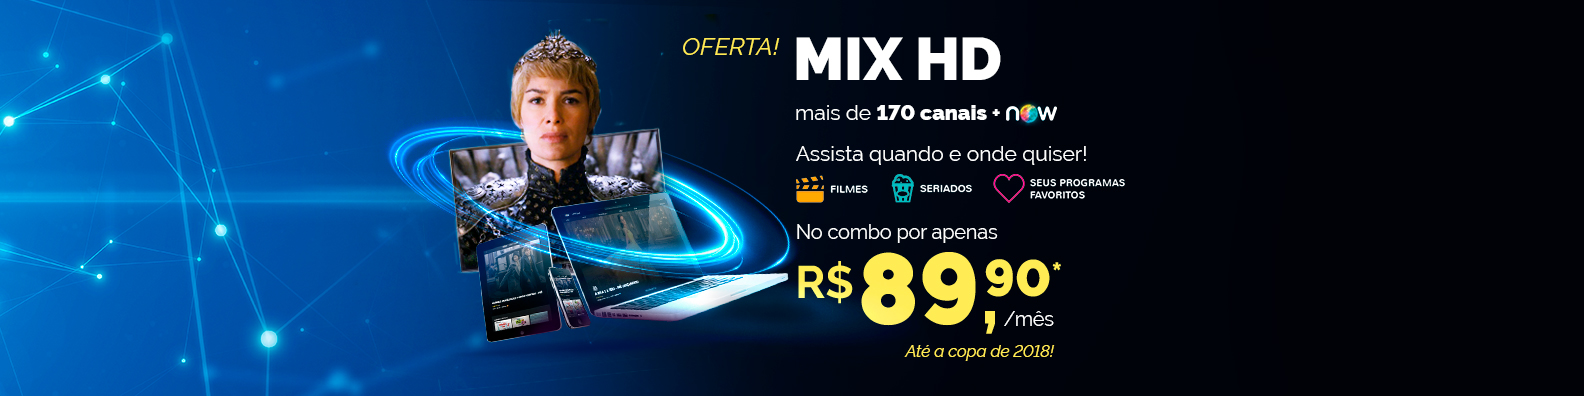 NET MIX HD no combo por R$129,90*